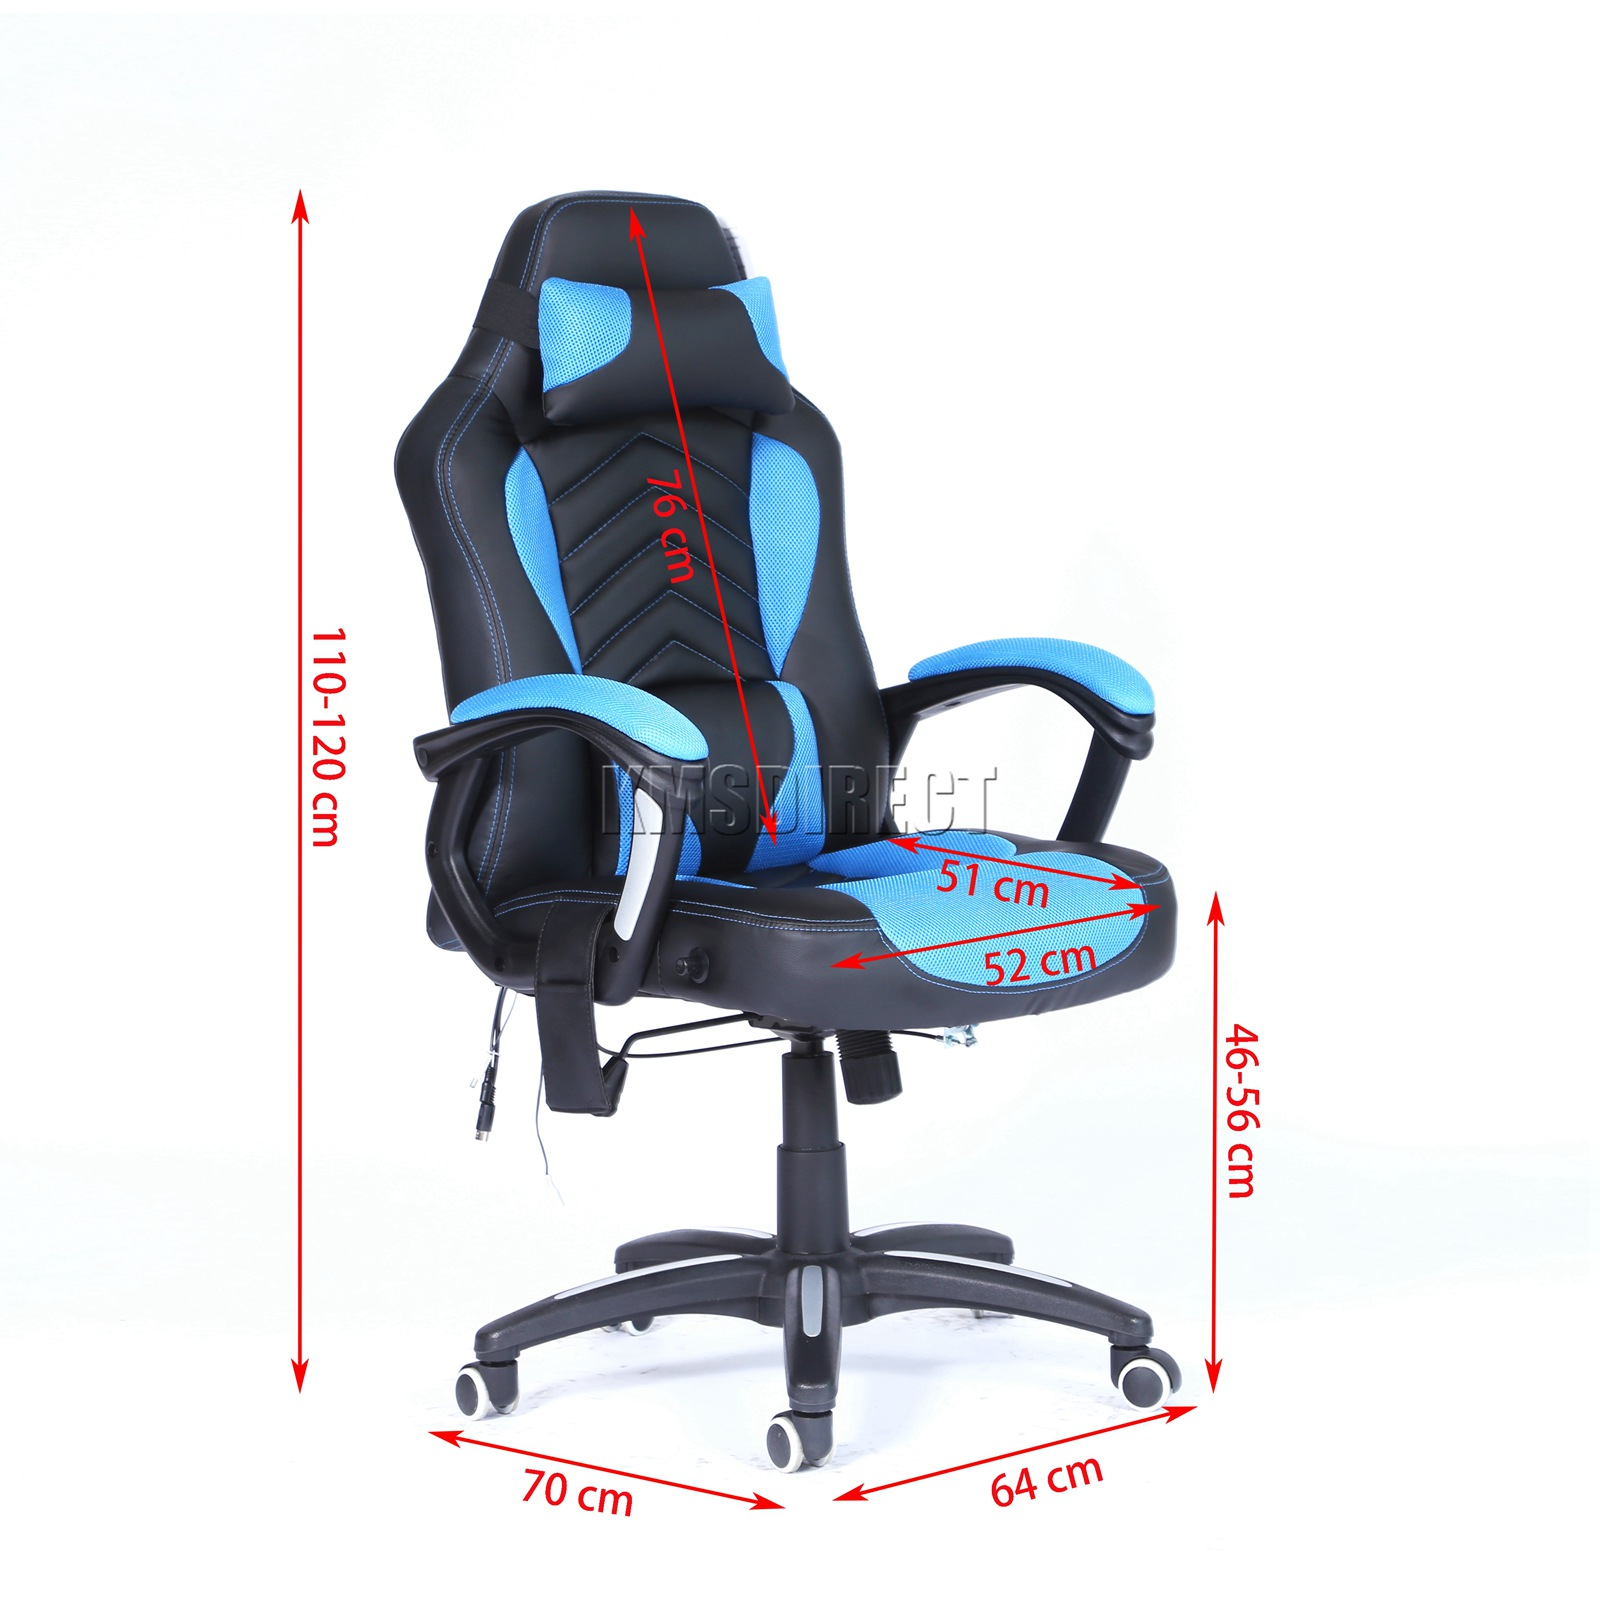 WestWood-Heated-Massage-Office-Chair-Gaming-amp-Computer-Recliner-Swivel-MC09 thumbnail 15